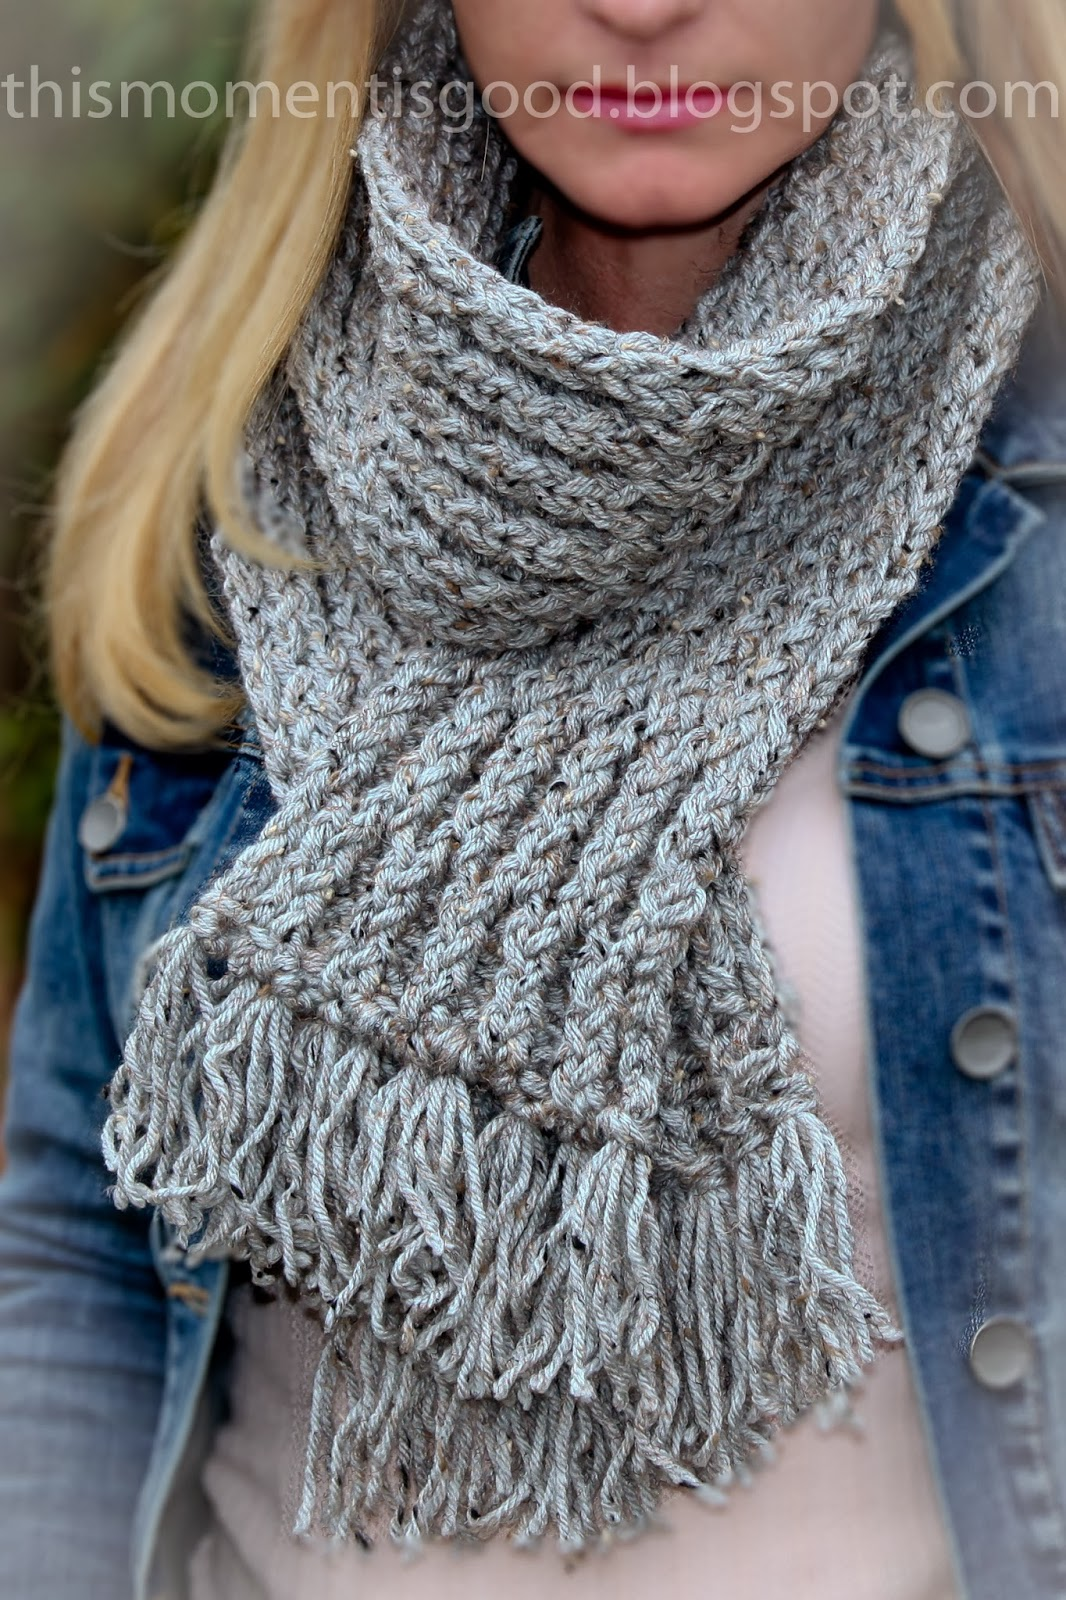 Loom Knitting Patterns : Loom Knitting by This Moment is Good!: LOOM KNIT: ELEGANT HONEYCOMB SCARF